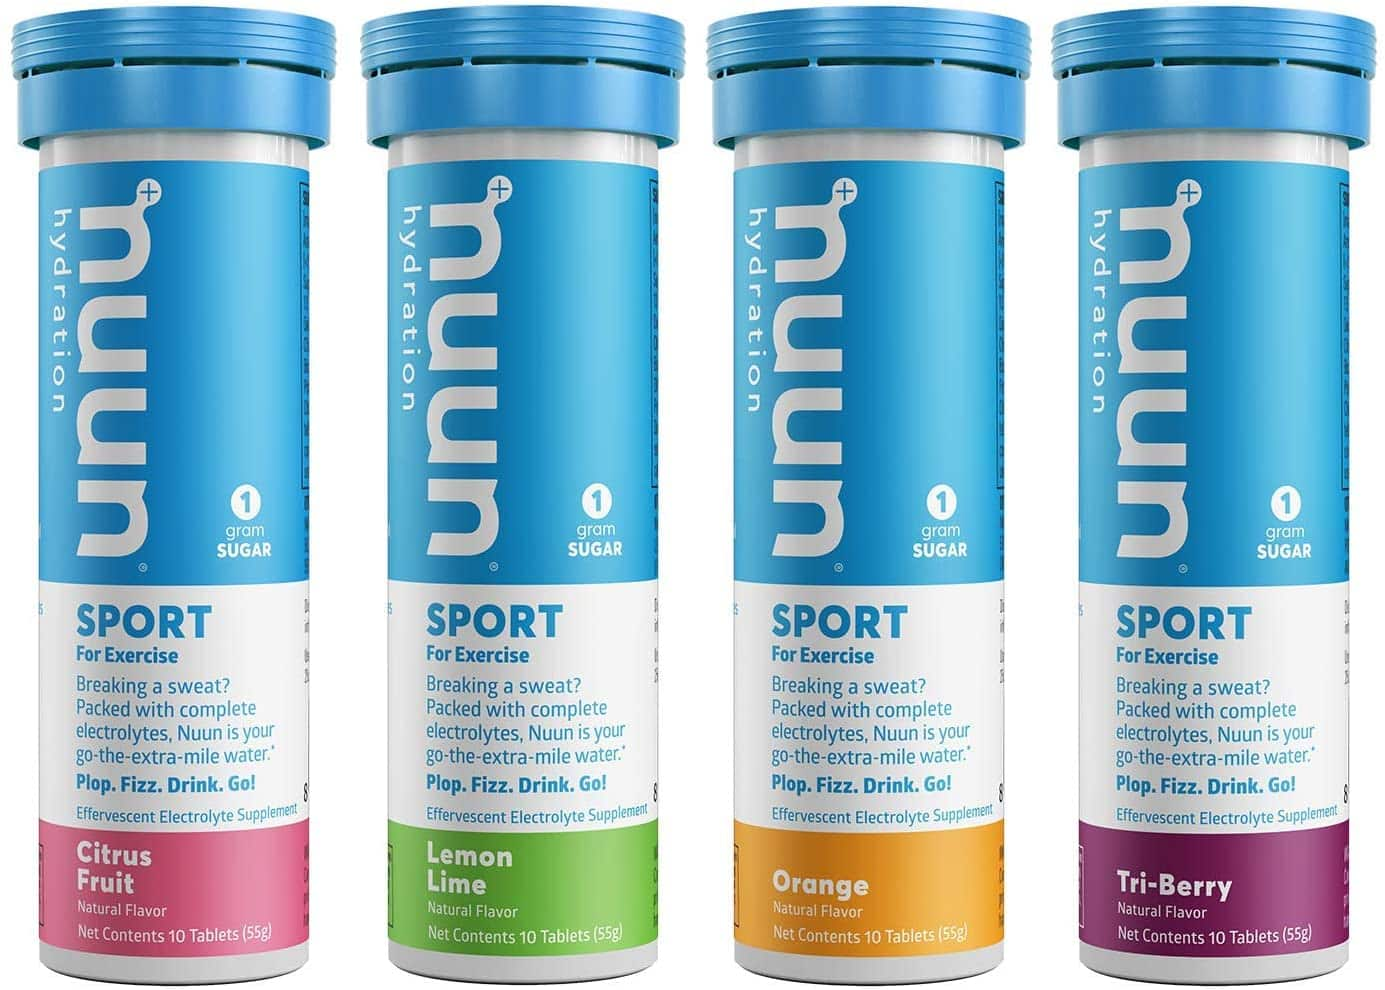 4-Tubes Nuun Hydration Electrolyte Drink Tablets (40 Servings, Citrus/Berry) $11.45 w/ Subscribe & Save